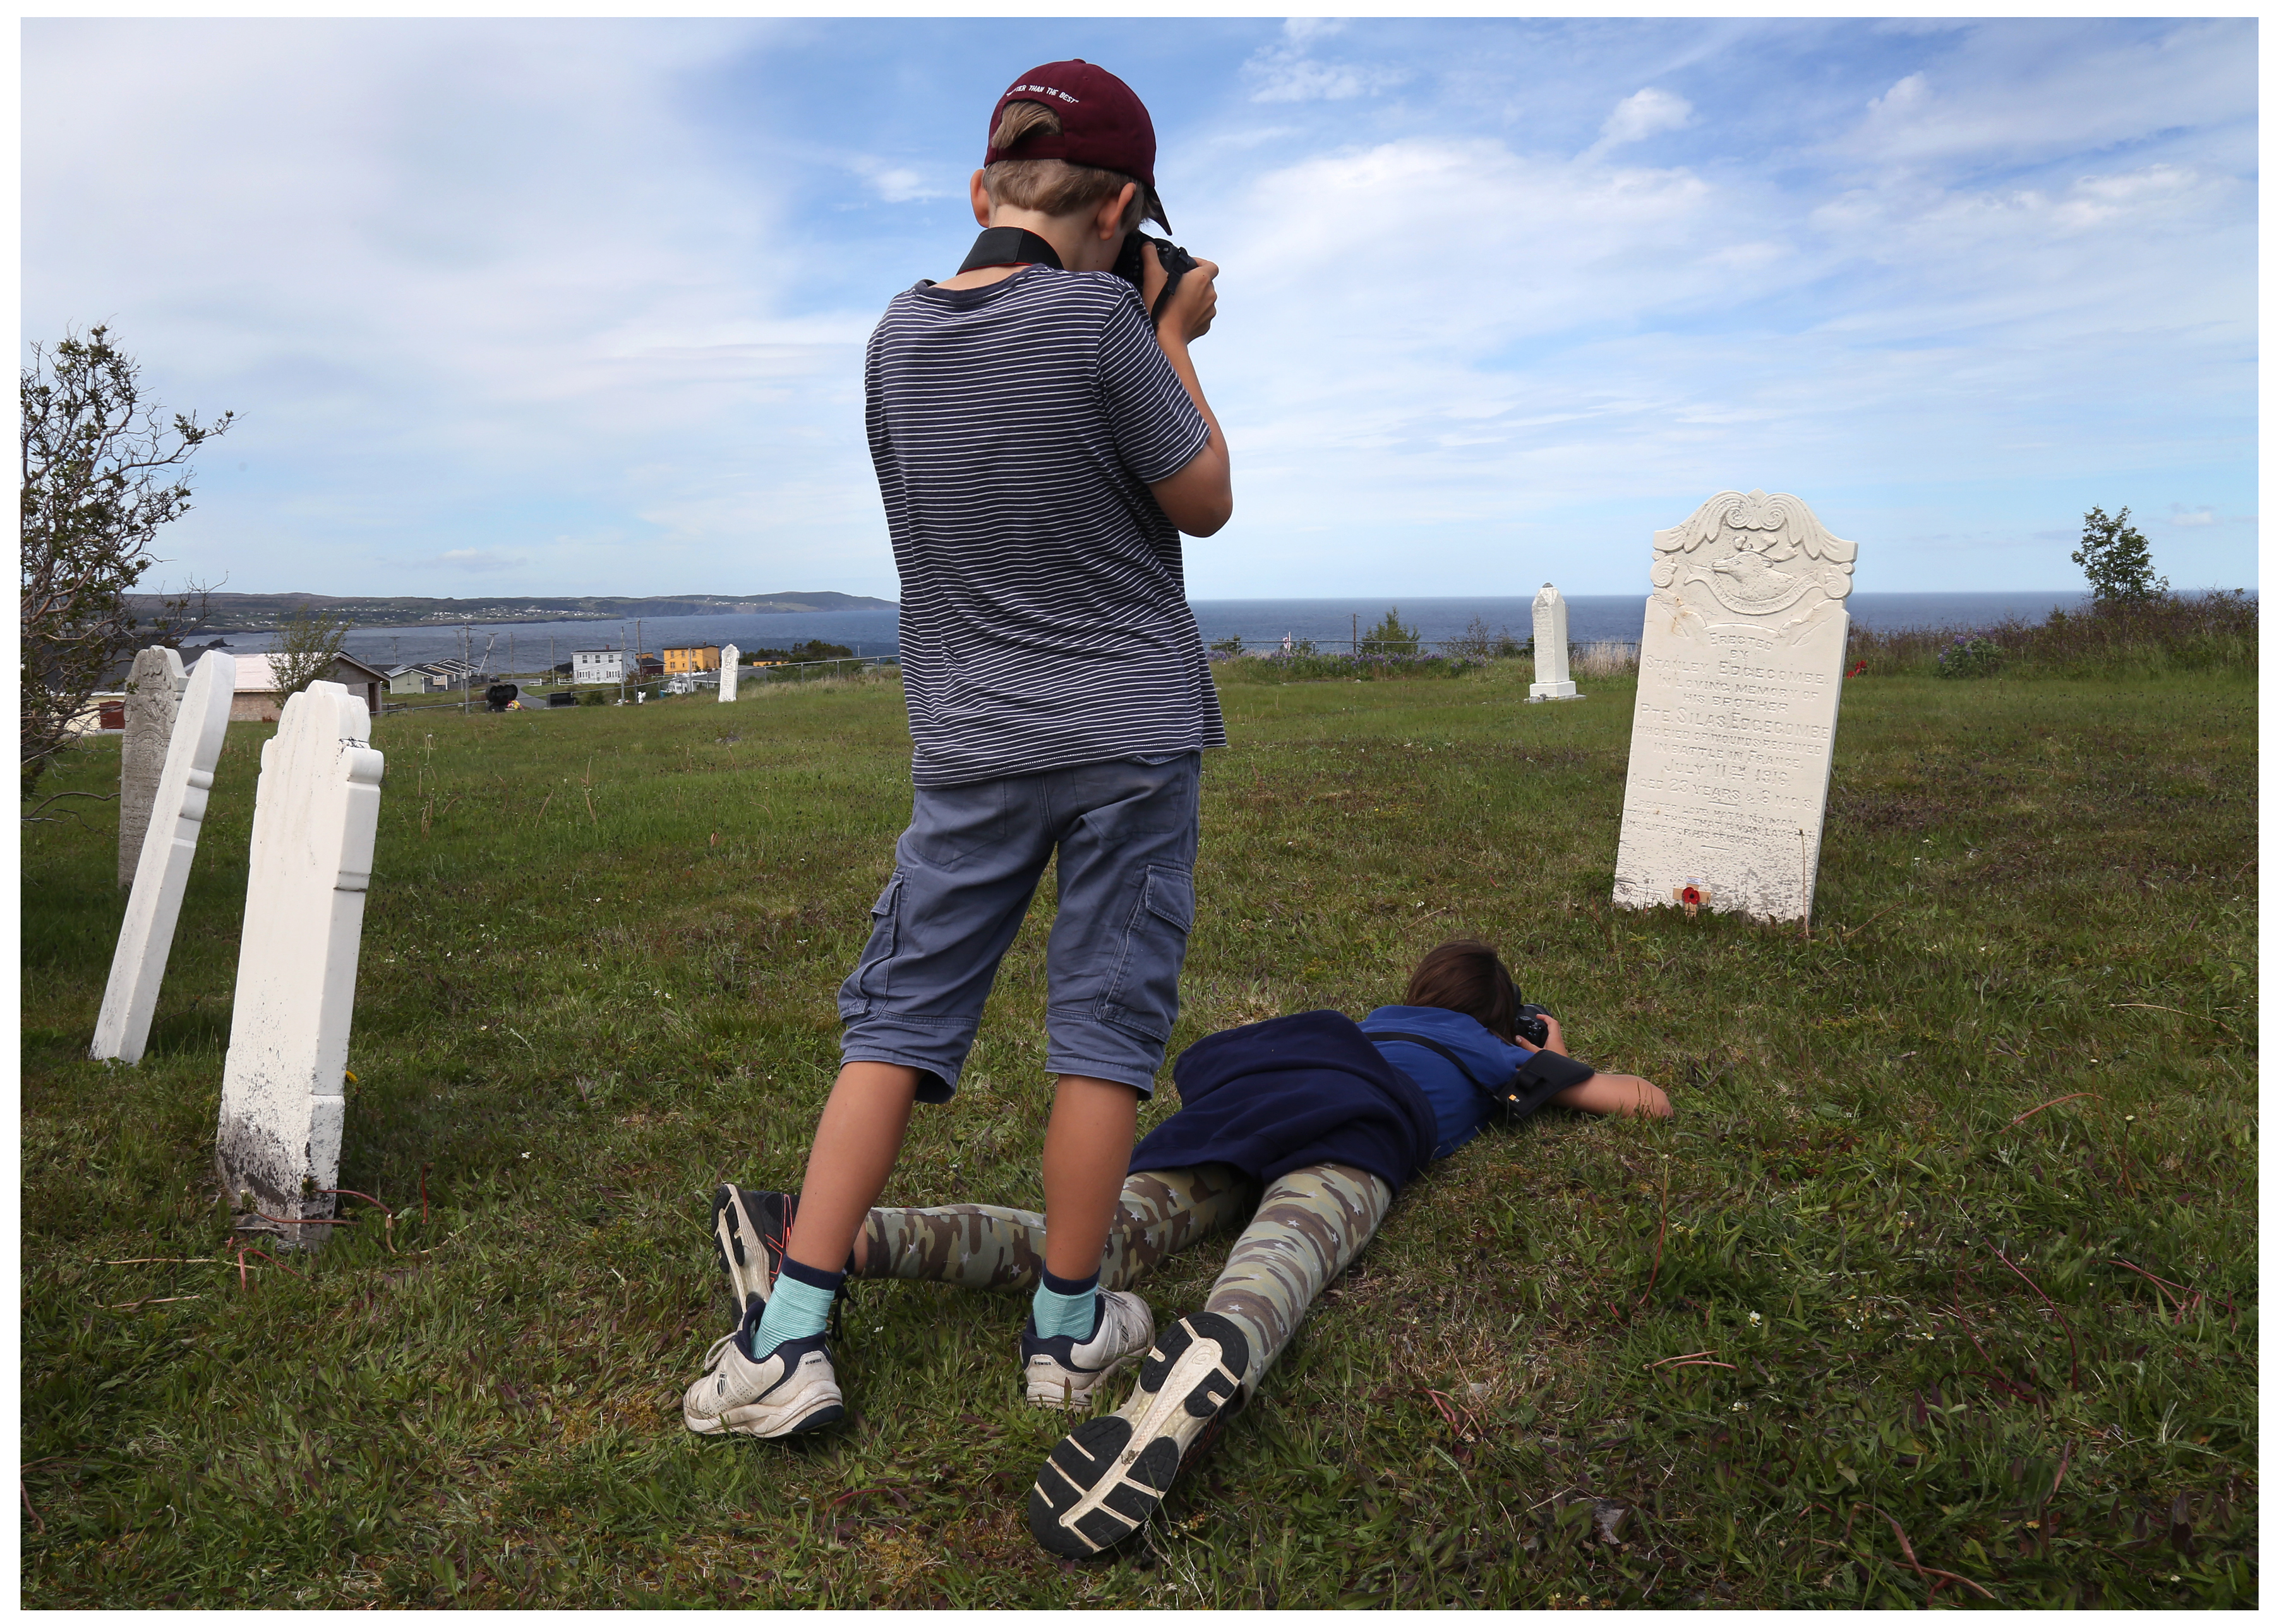 Students Oscar Heard, standing, and Zoe Spenceley, photograph the memorial marker for Silas Edgecombe, which his brother built at Ochre Pit Cove. (Paul Daly for CBC)